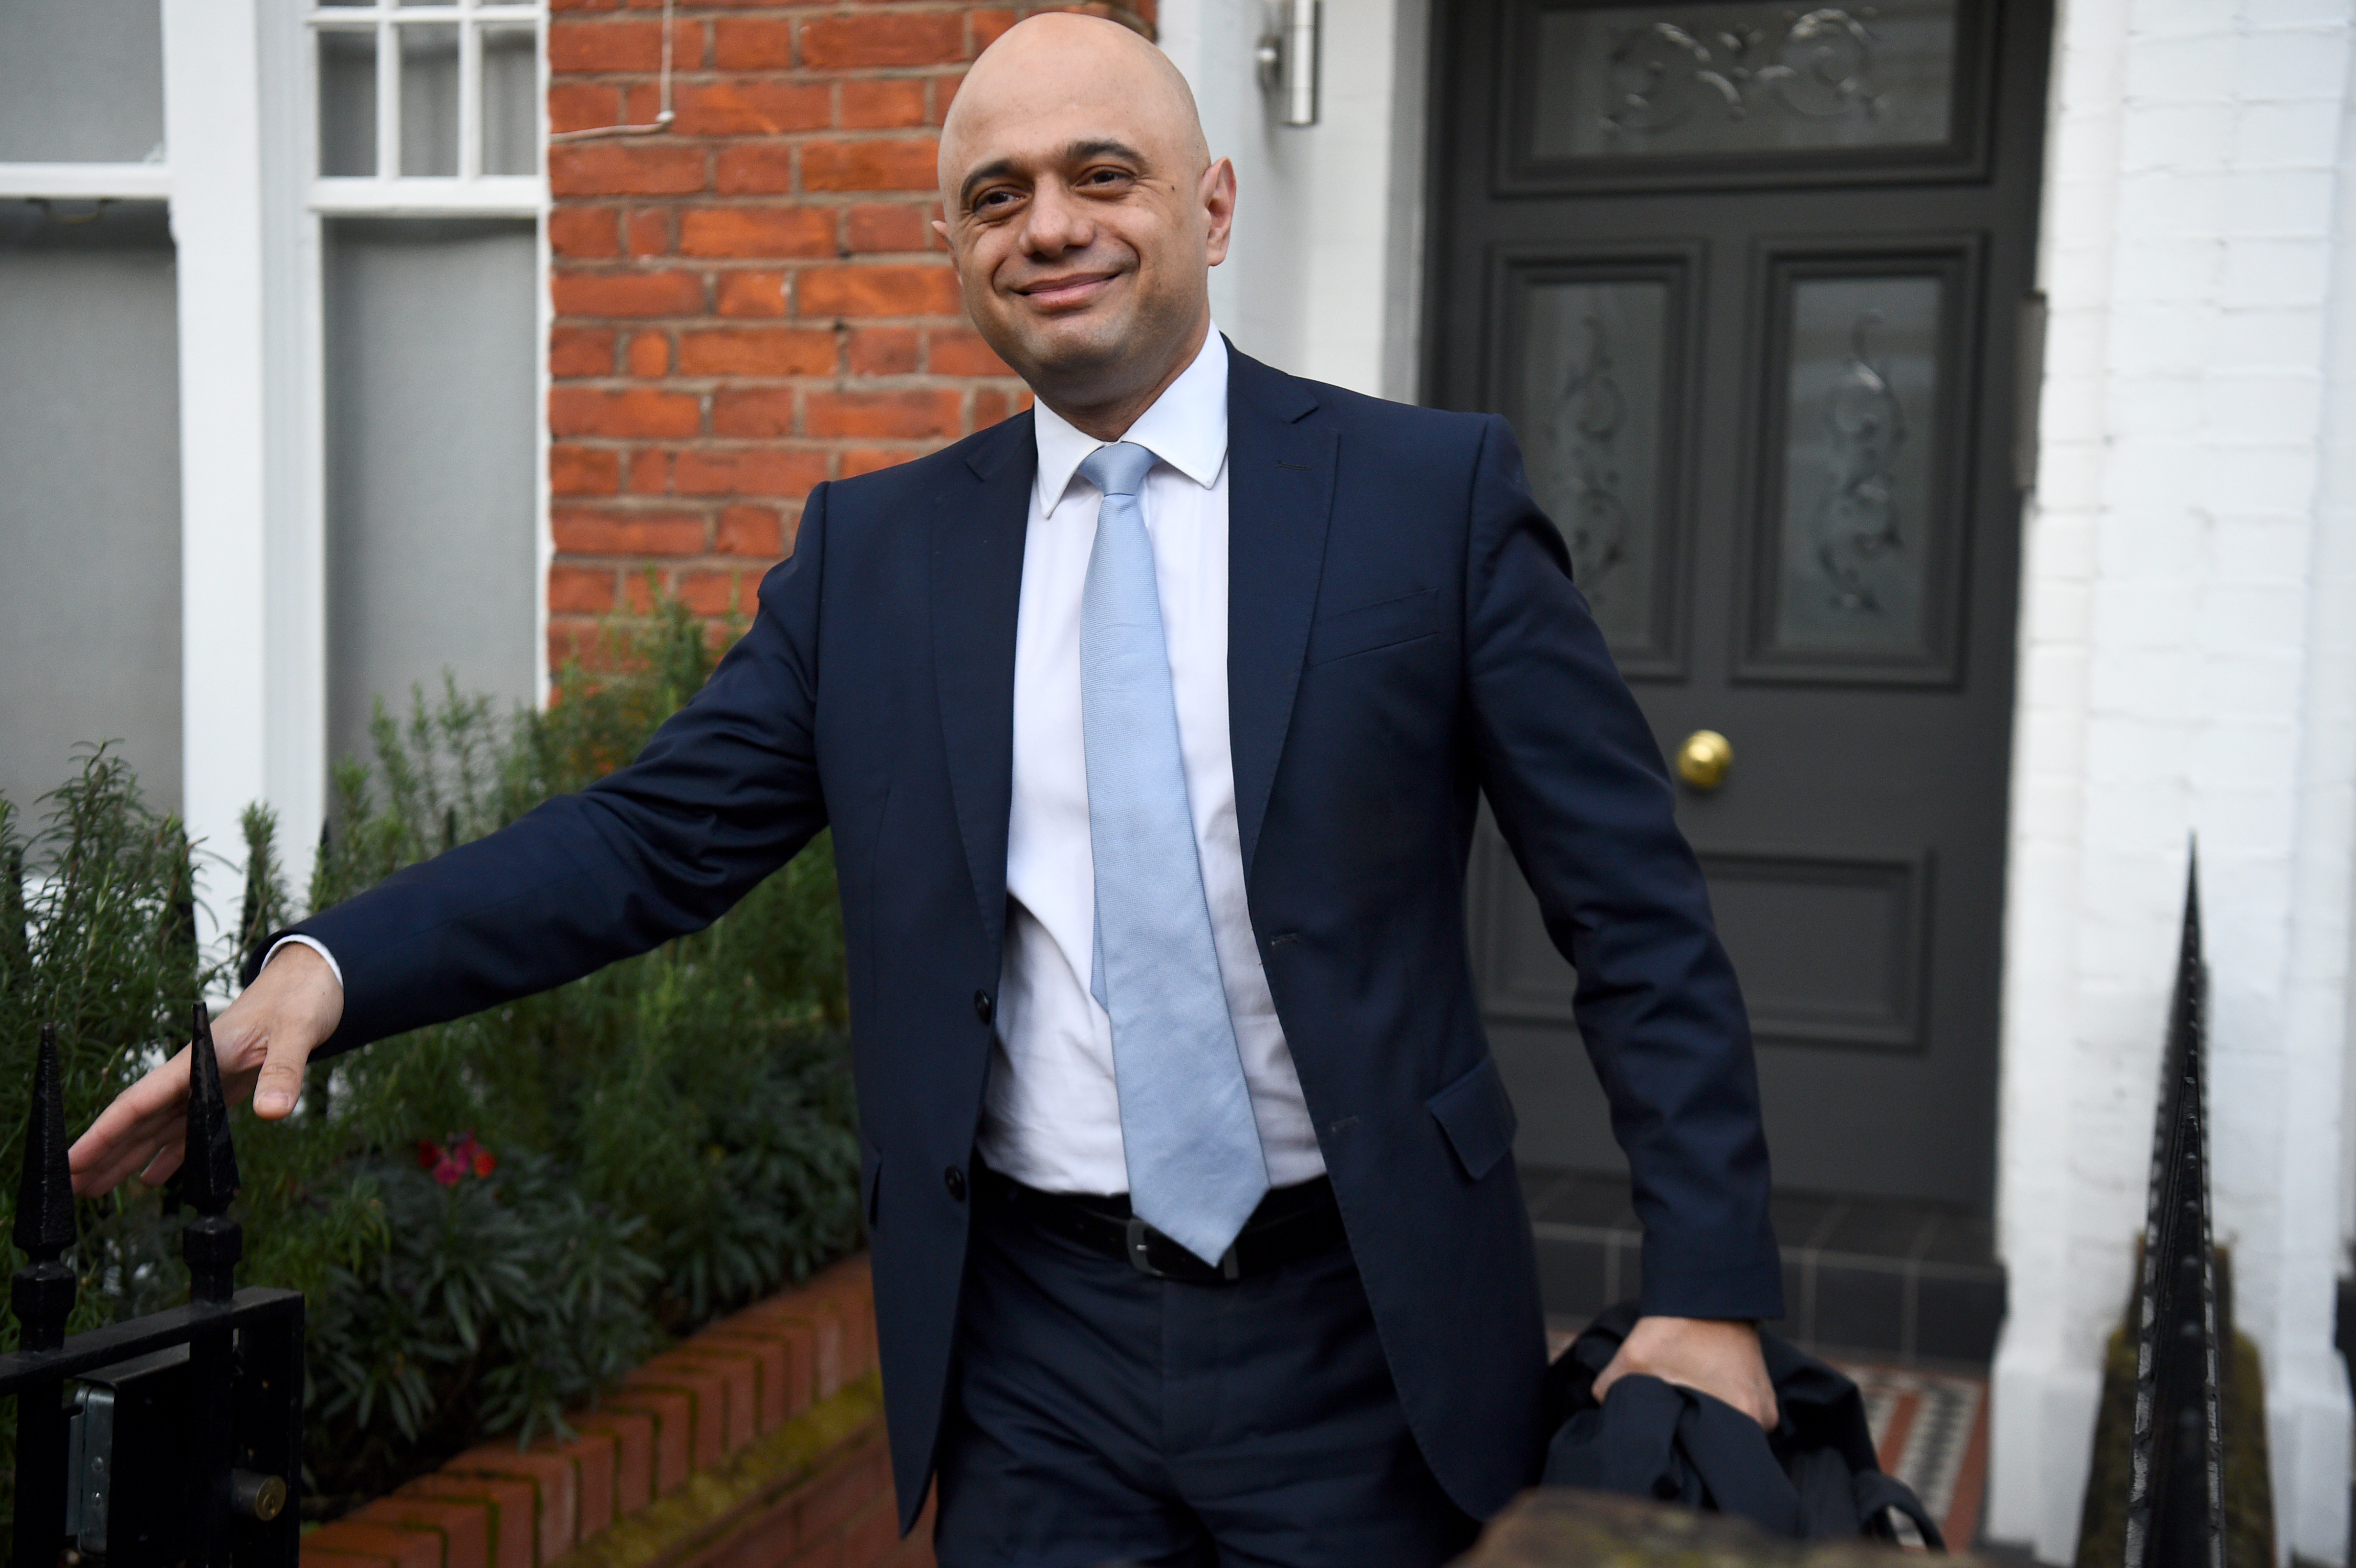 Former Chancellor of the Exchequer Sajid Javid leaving his south London home following the Cabinet reshuffle. (Photo by Kirsty O'Connor/PA Images via Getty Images)